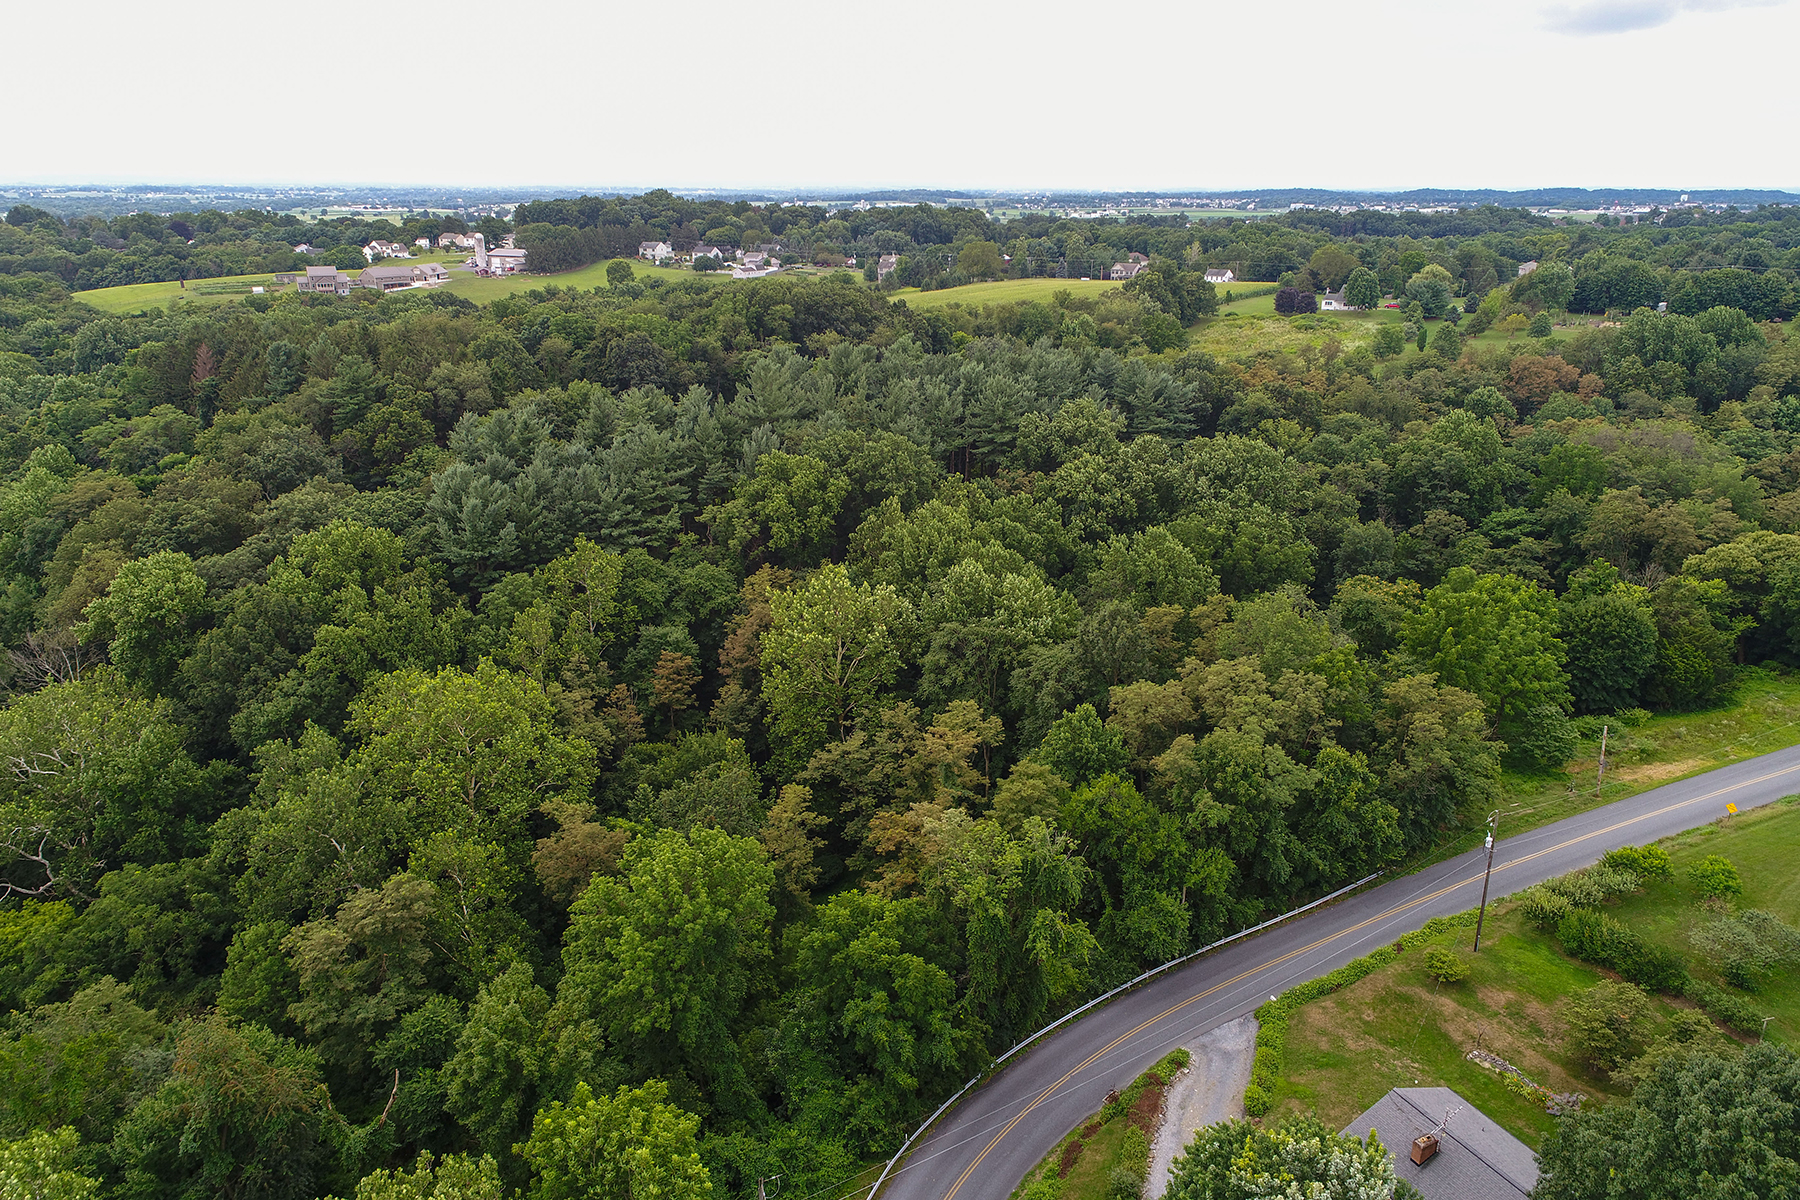 Land for Sale at 58 S. Heck Road 58 S. Heck Road Lititz, Pennsylvania 17543 United States